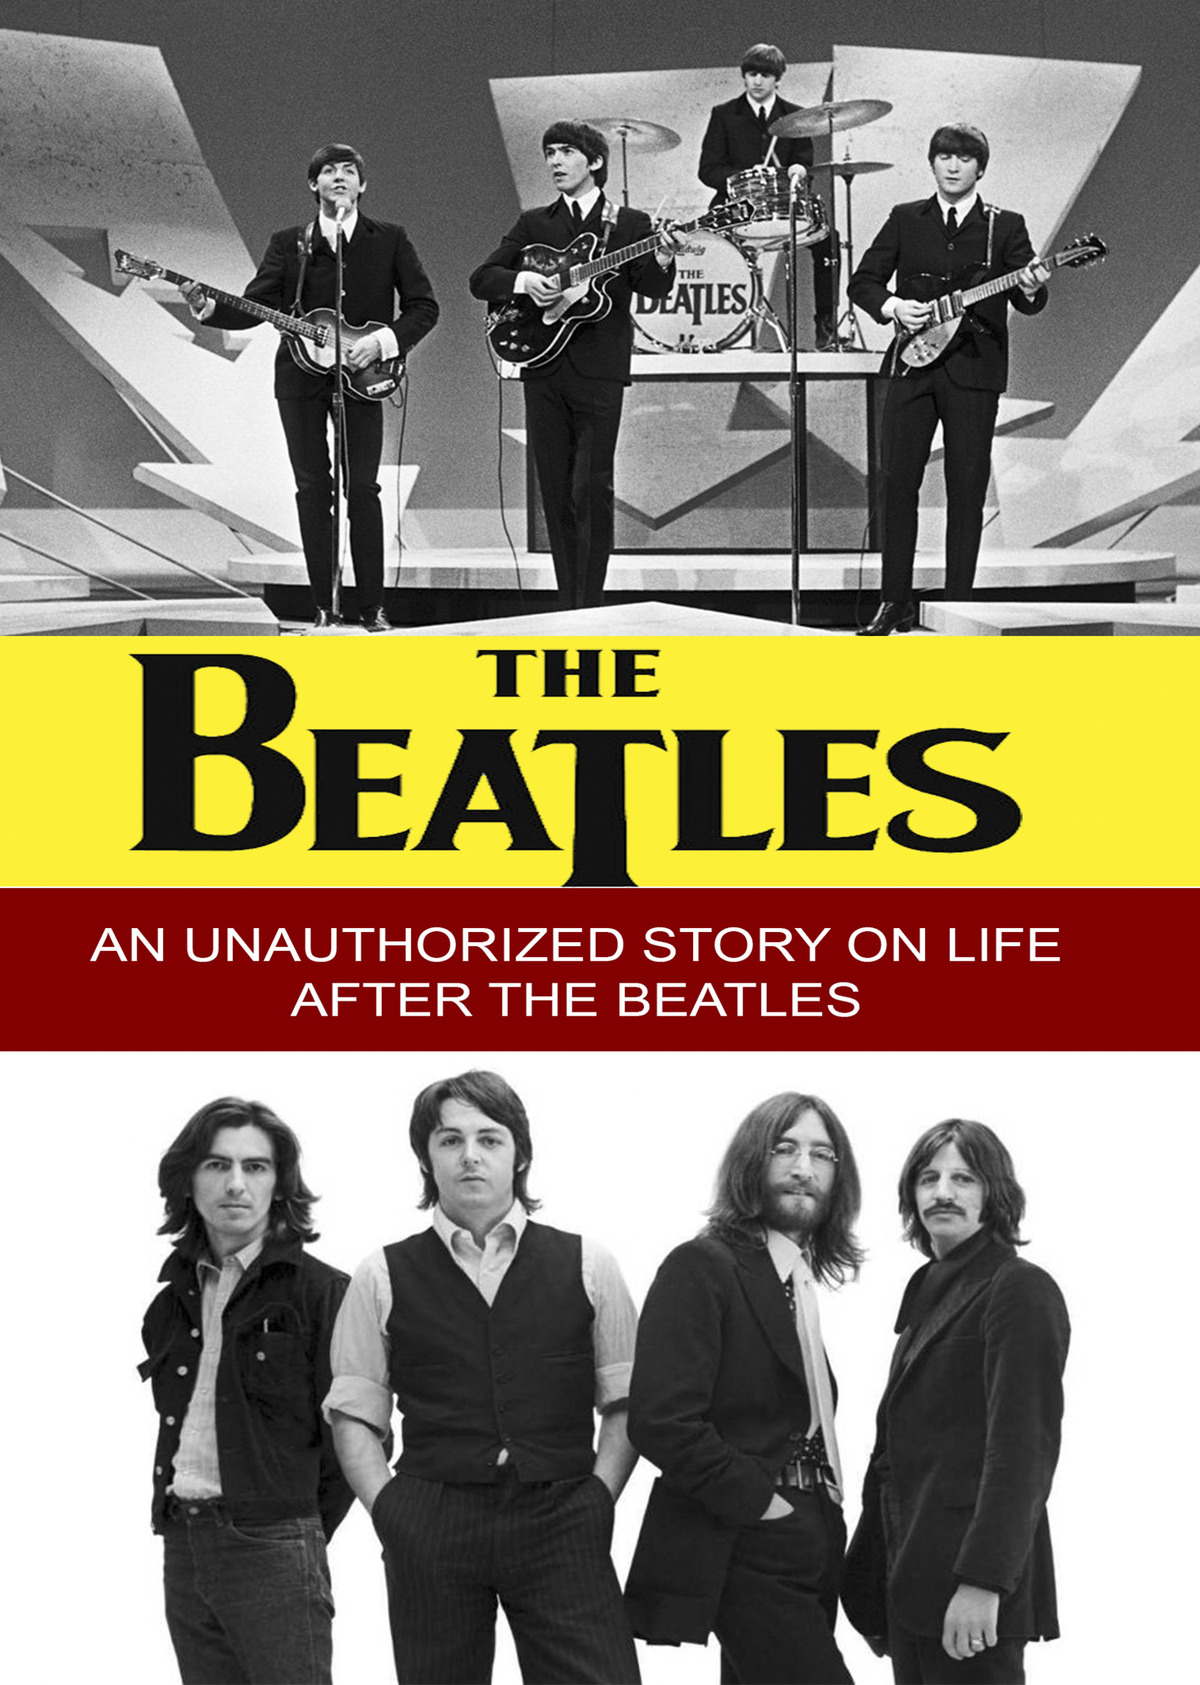 L7826 - The Beatles - An Unauthorized Story on Life after the Beatles